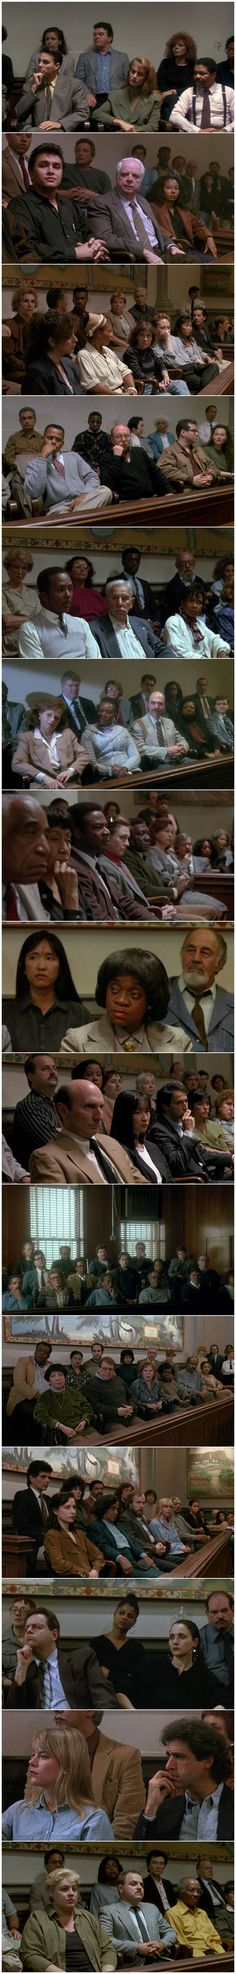 THE CONTEMPLATIVE JURIES OF LAW & ORDER, SEASON 1